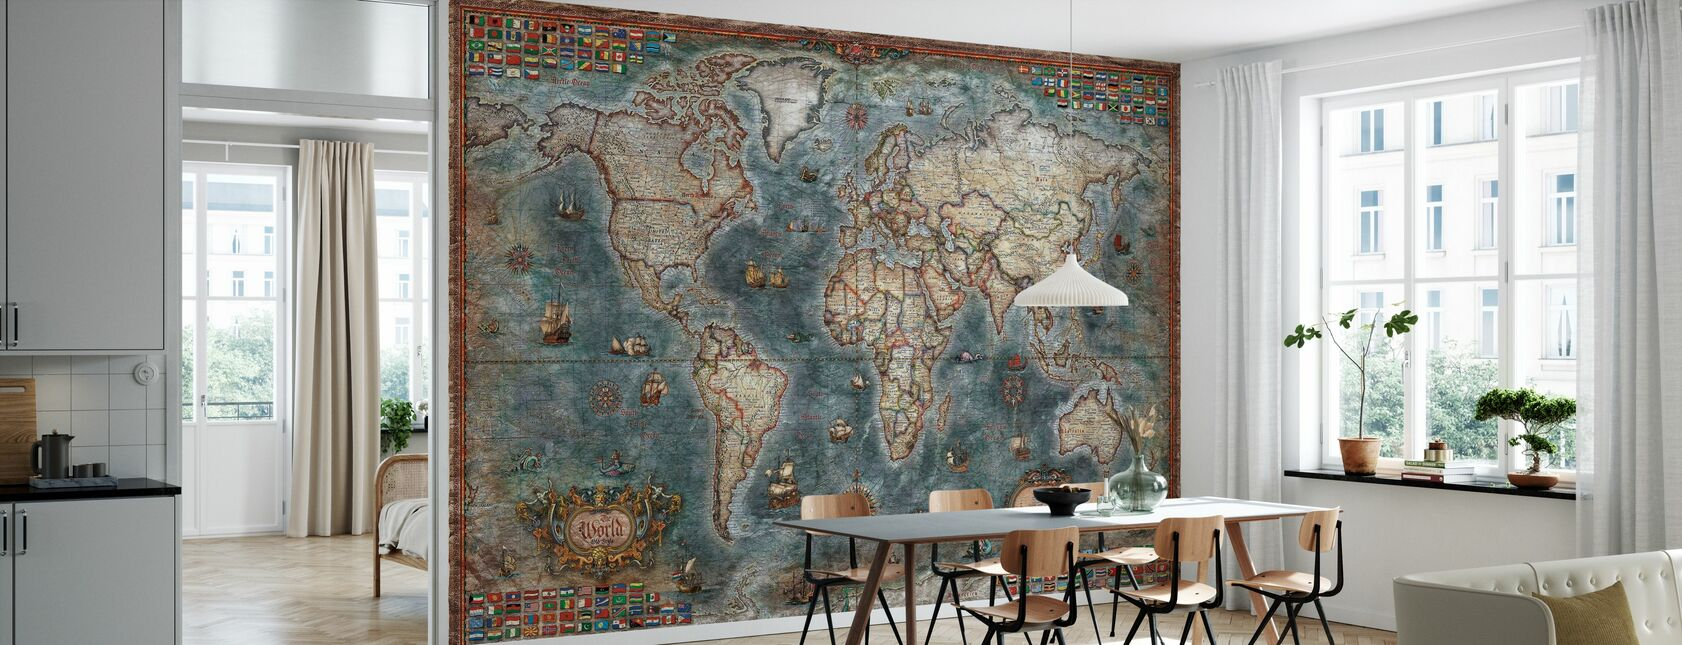 Old Style World Map - Wallpaper - Kitchen